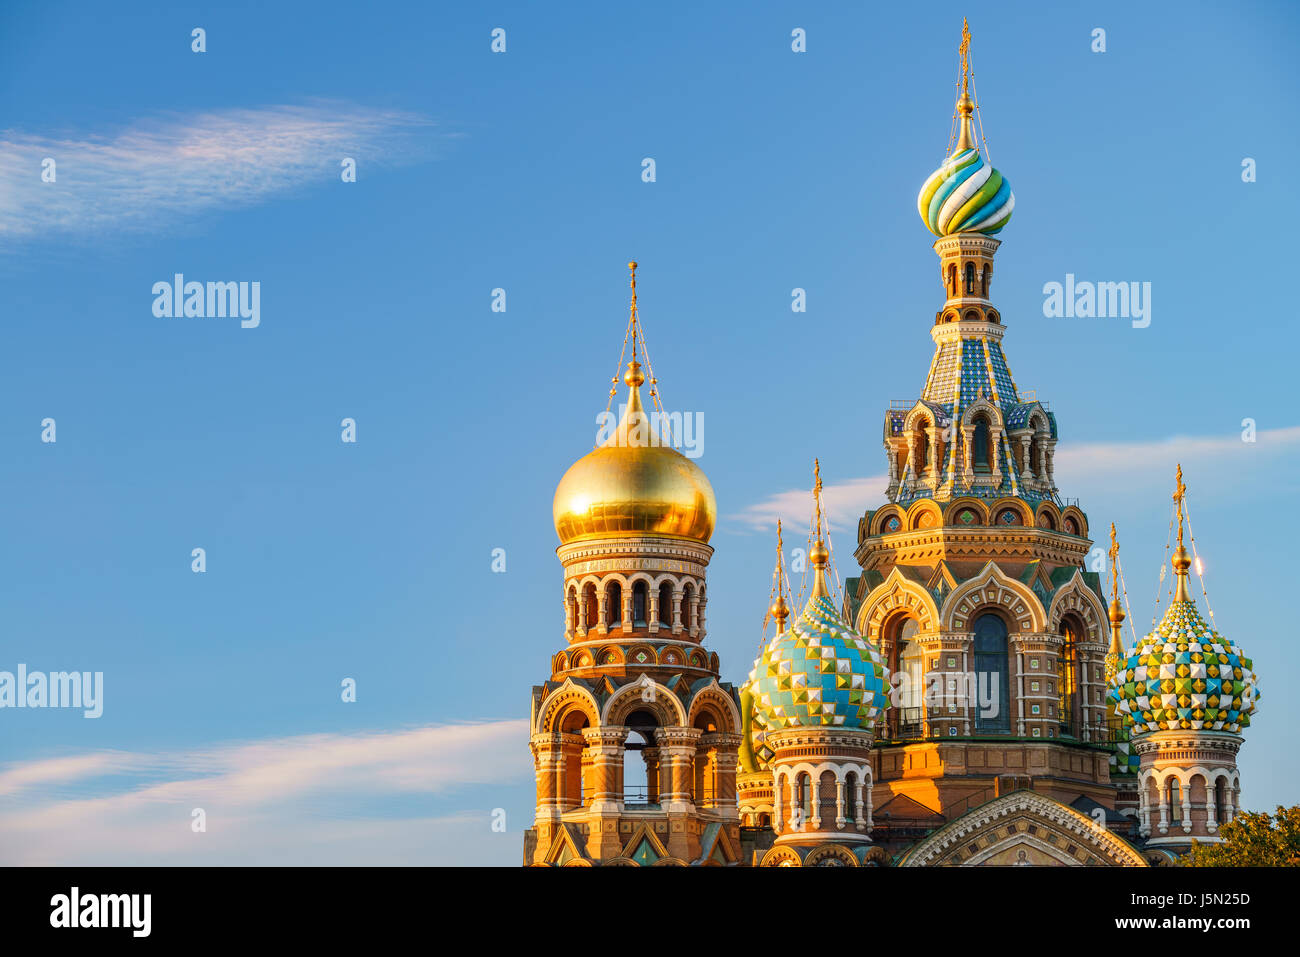 Church of the Savior on Spilled Blood in St. Petersburg, Russia - Stock Image